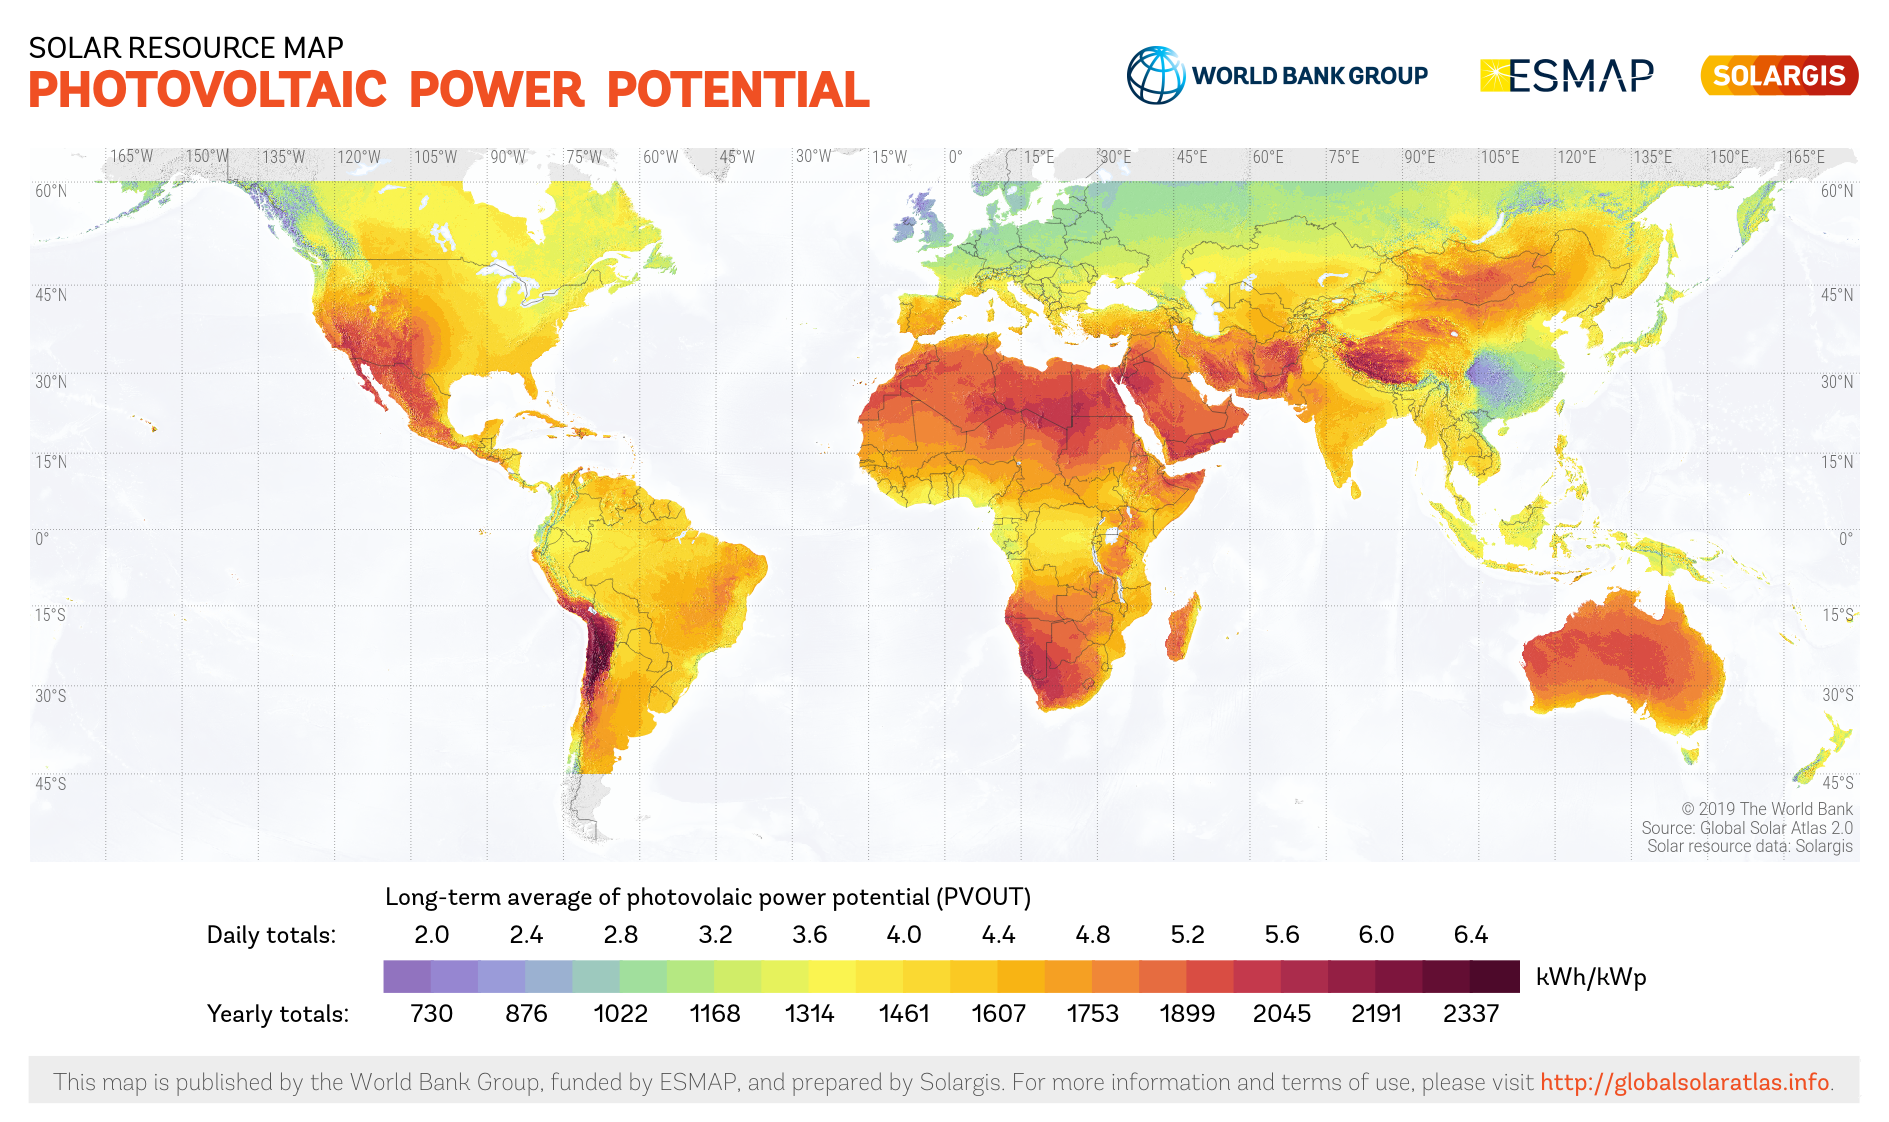 Nations with the most solar potential